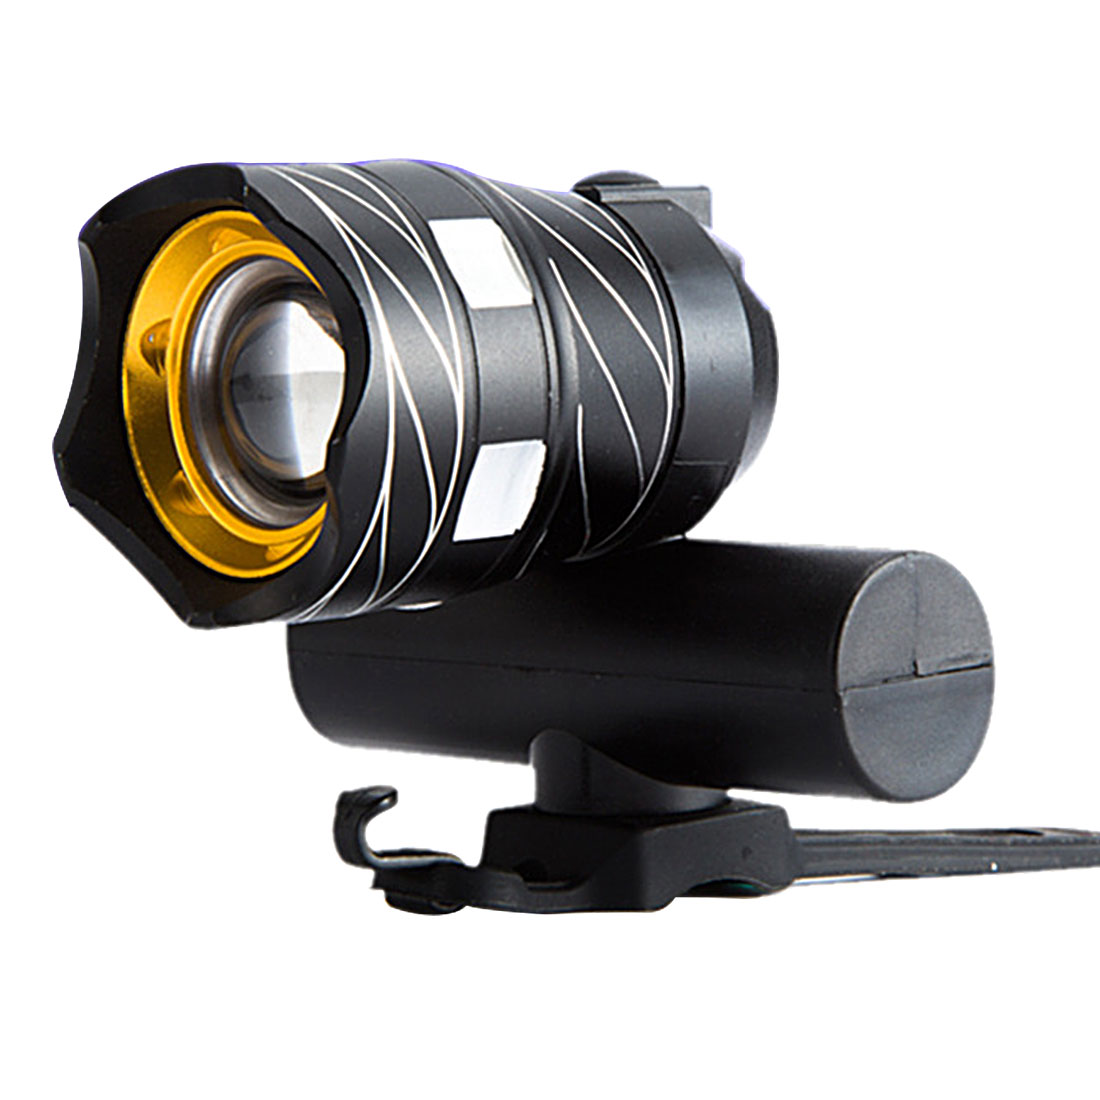 15000LM Zoomable XM-L T6 LED Bicycle Light Bike Front Lamp Torch Headlight With USB Rechargeable Built-in Battery newest usb 8000 lumens flashlight led cree xm t6 l2 front torch bicycle light lamp with usb charger bike clip